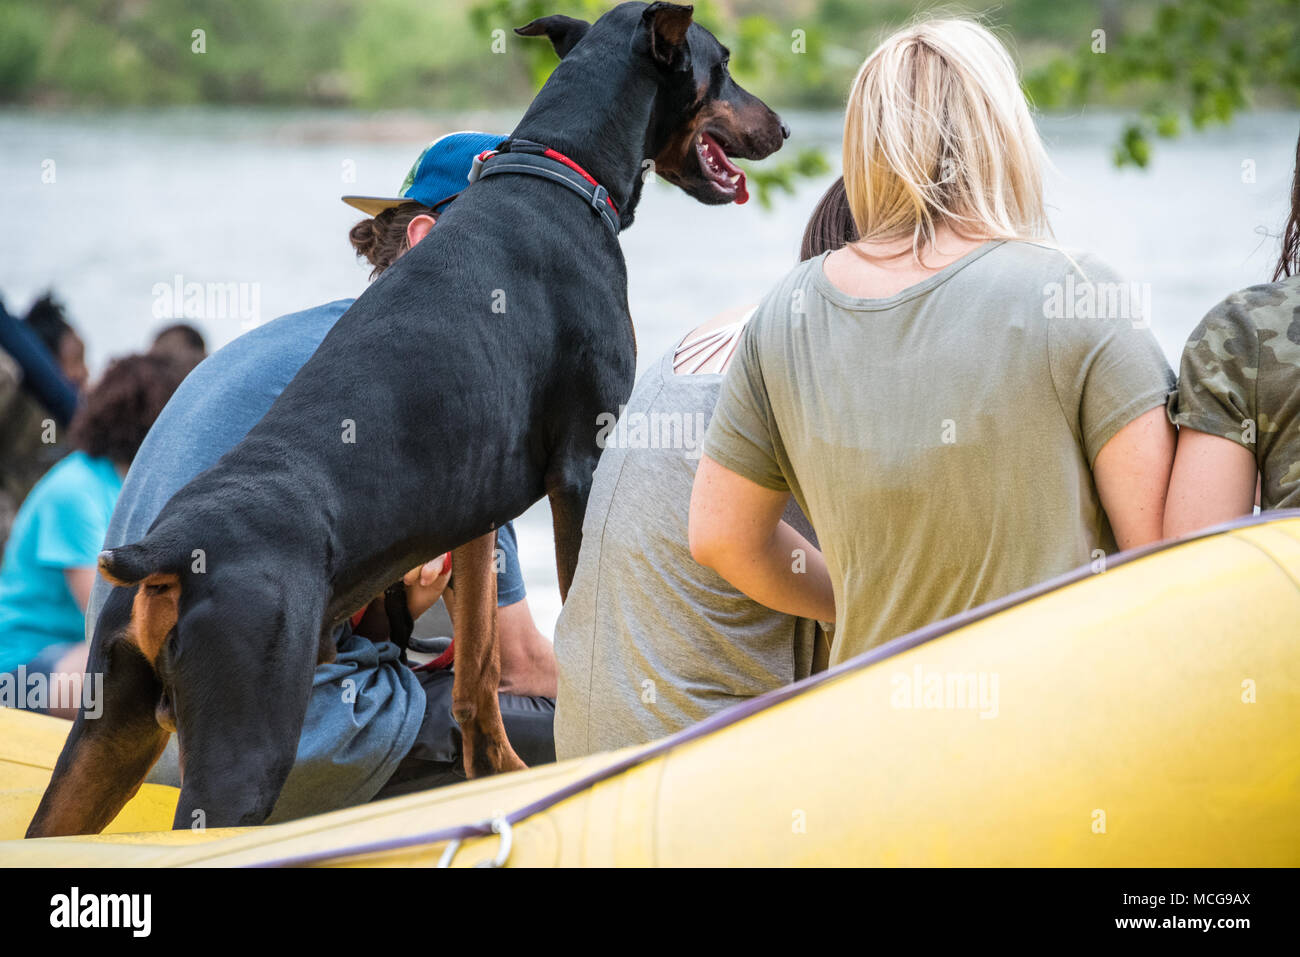 A Doberman Pinscher makes sure he doesn't miss any of the action at Paddle South, the USA Freestyle Kayak National Championship in Columbus, Georgia. - Stock Image